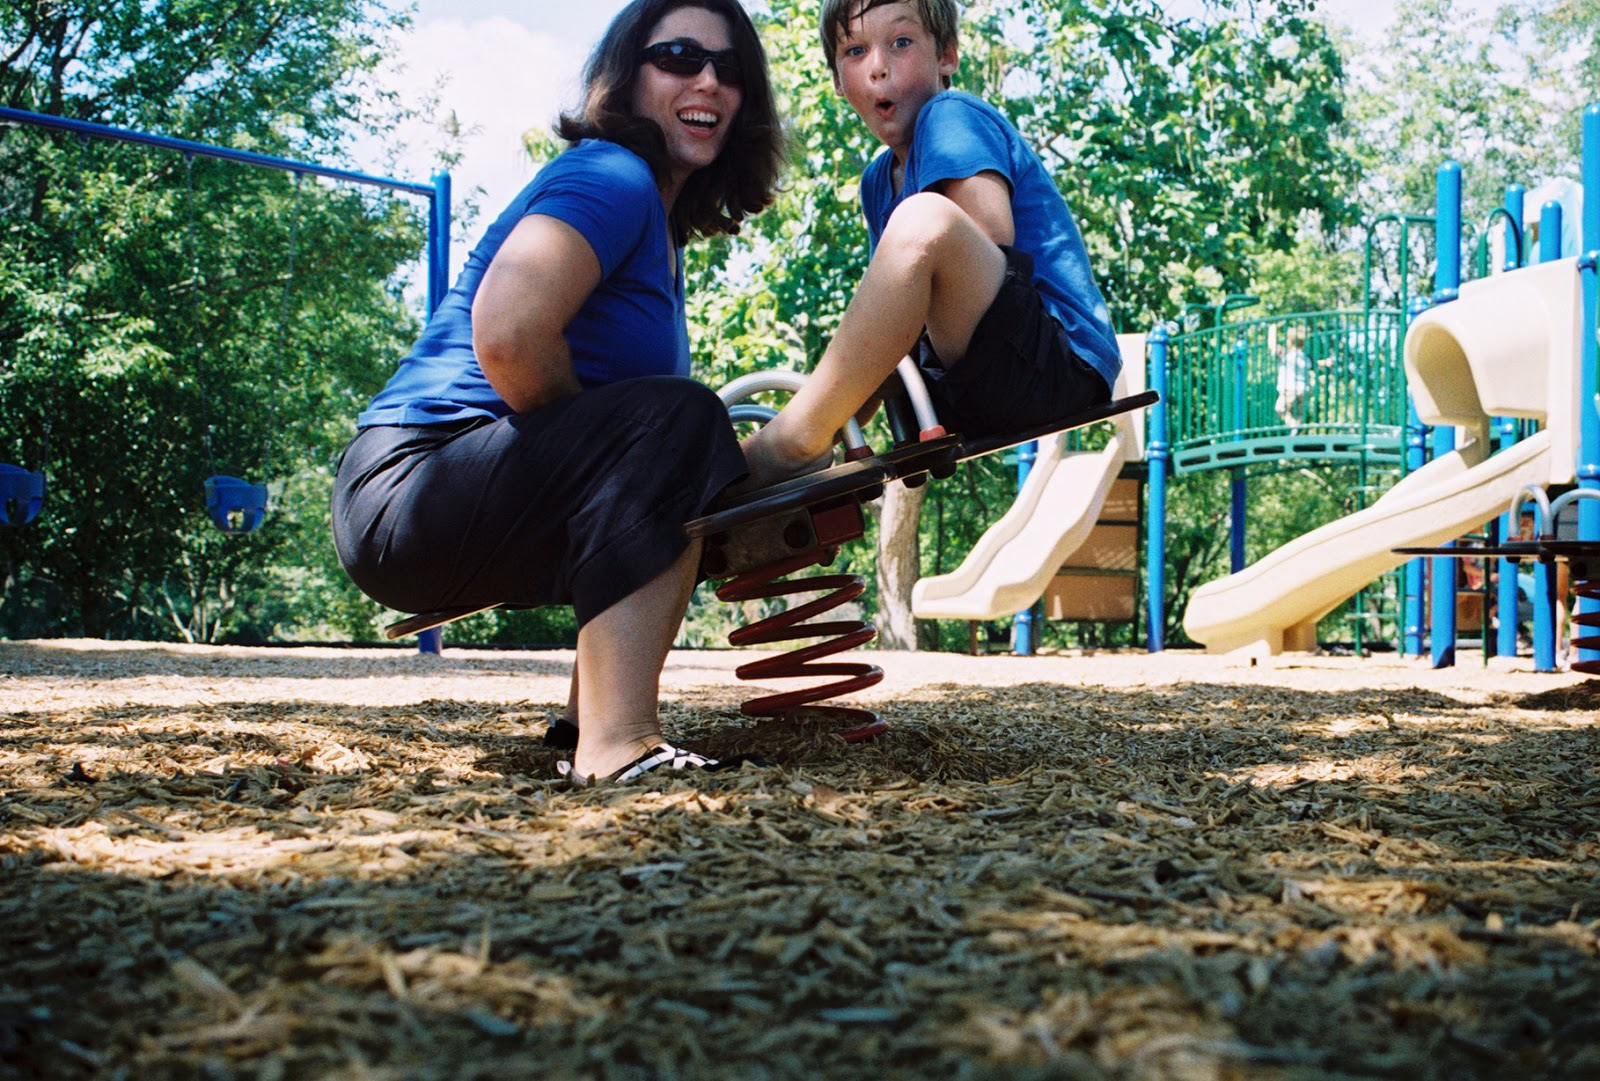 Author and son on teeter-totter ©Diana Sherblom Photography